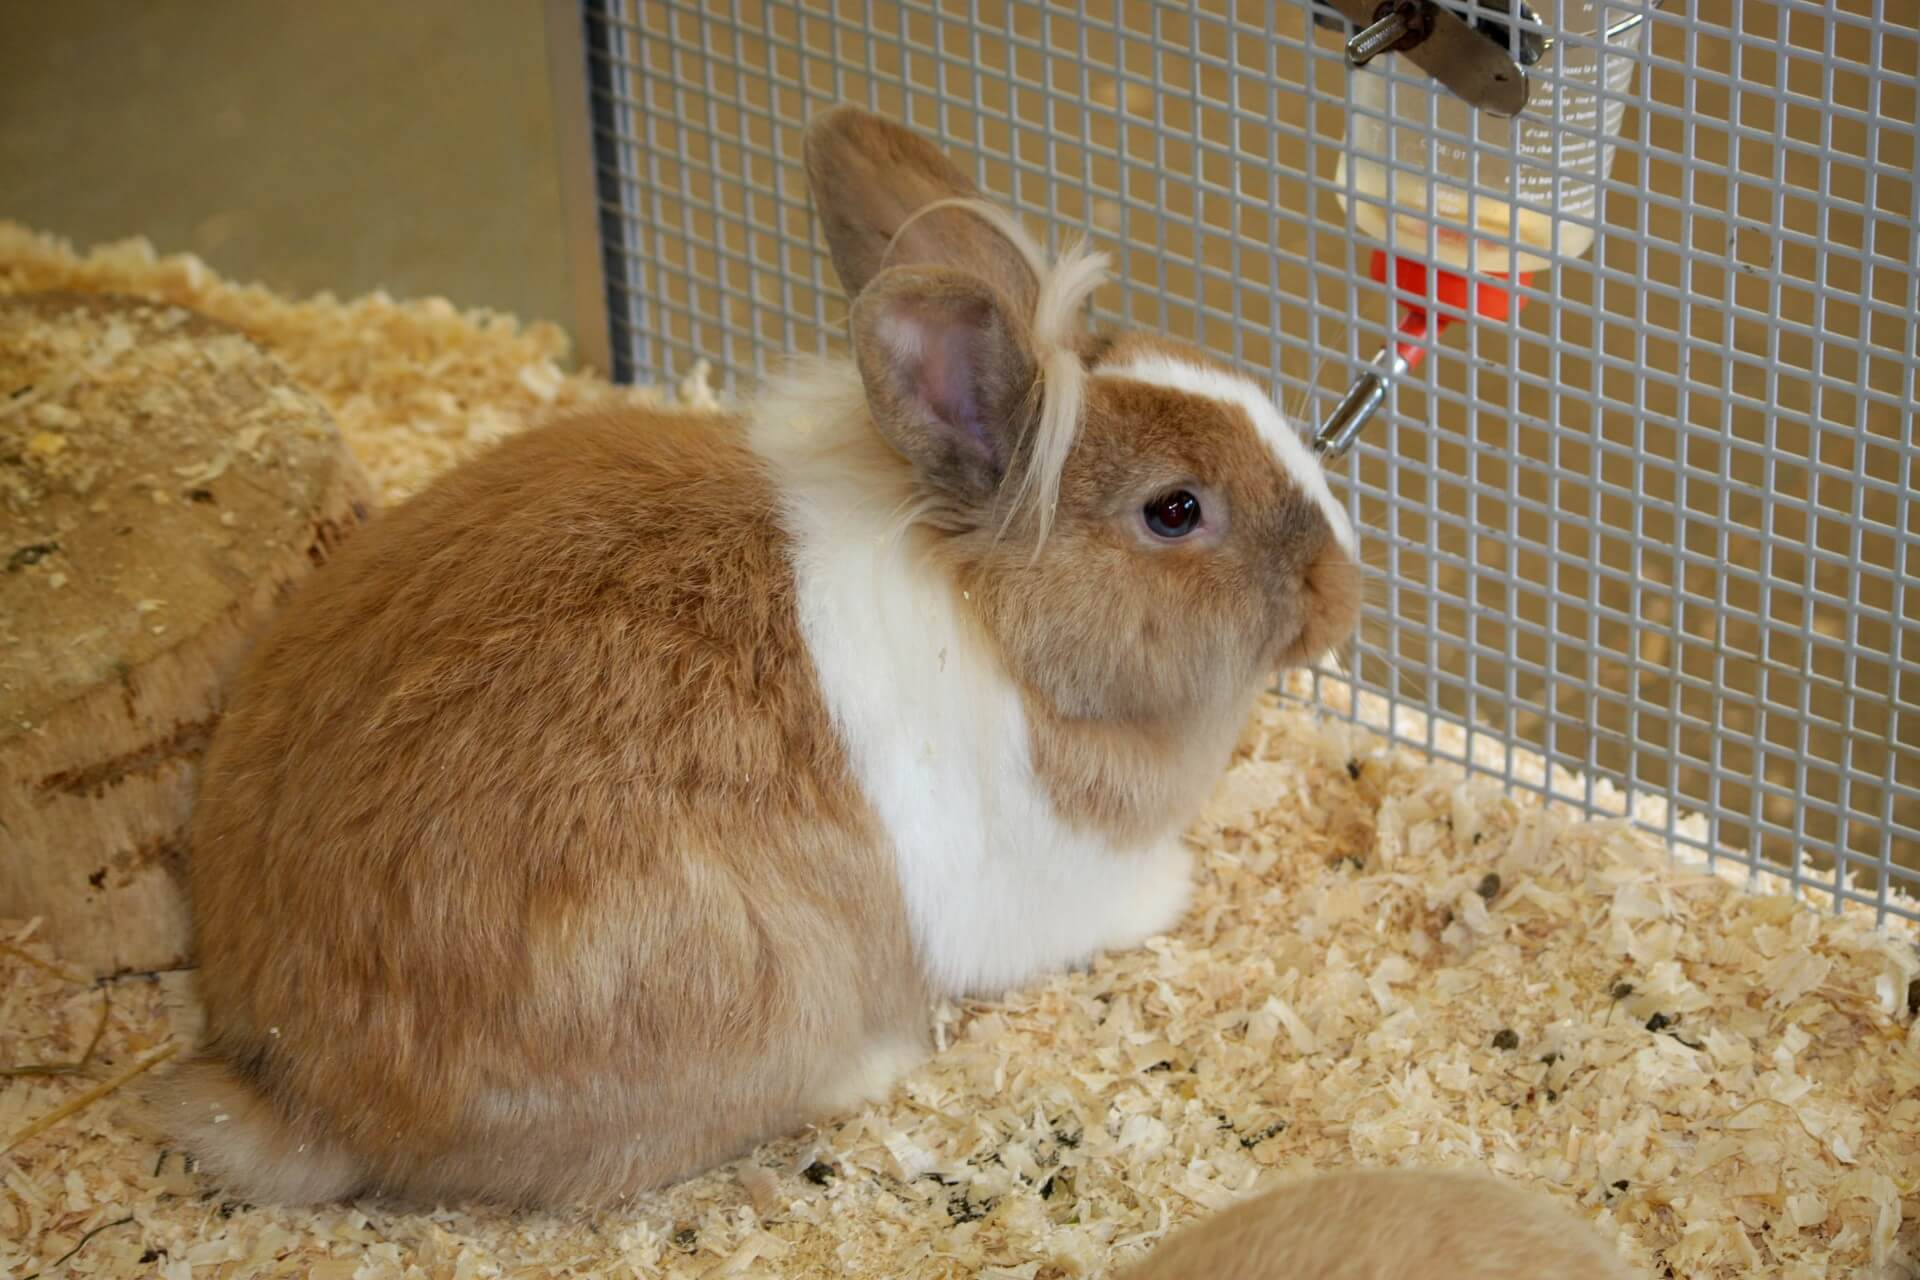 Can You Use Shredded Paper For Rabbit Bedding